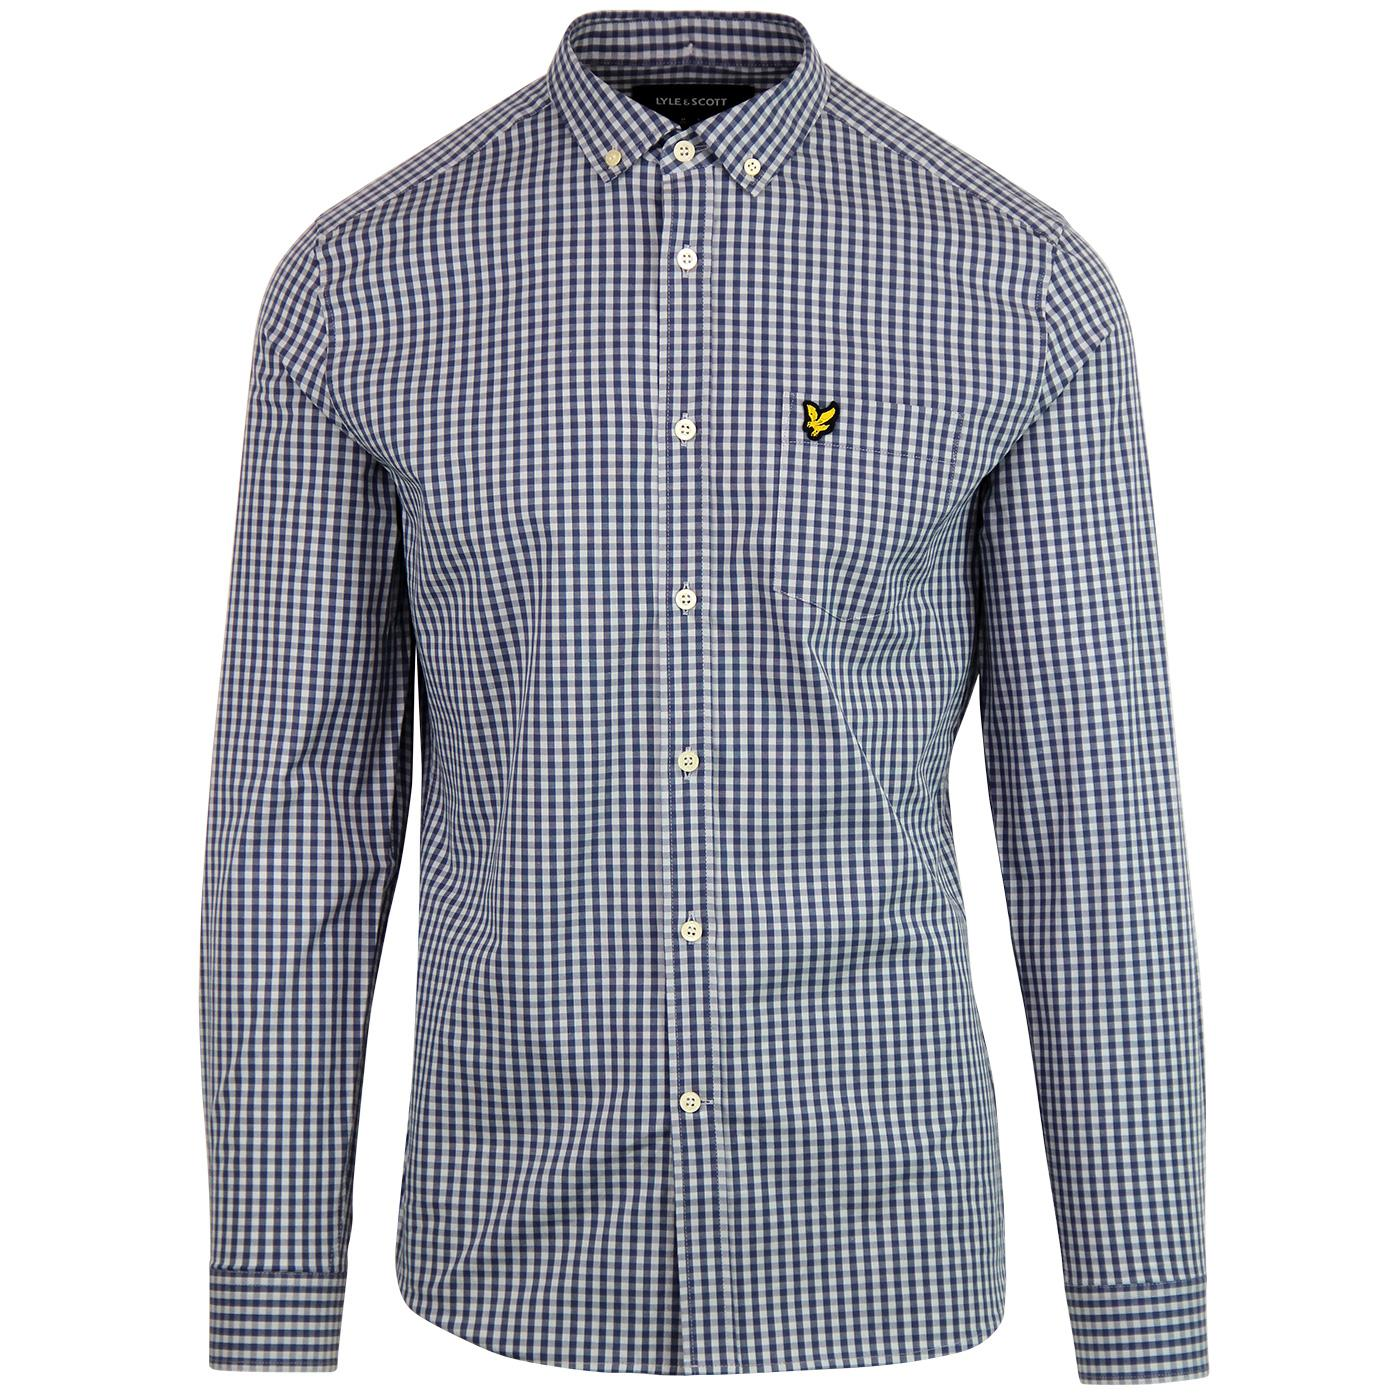 LYLE & SCOTT Mens Retro Mod Gingham Shirt - Blue